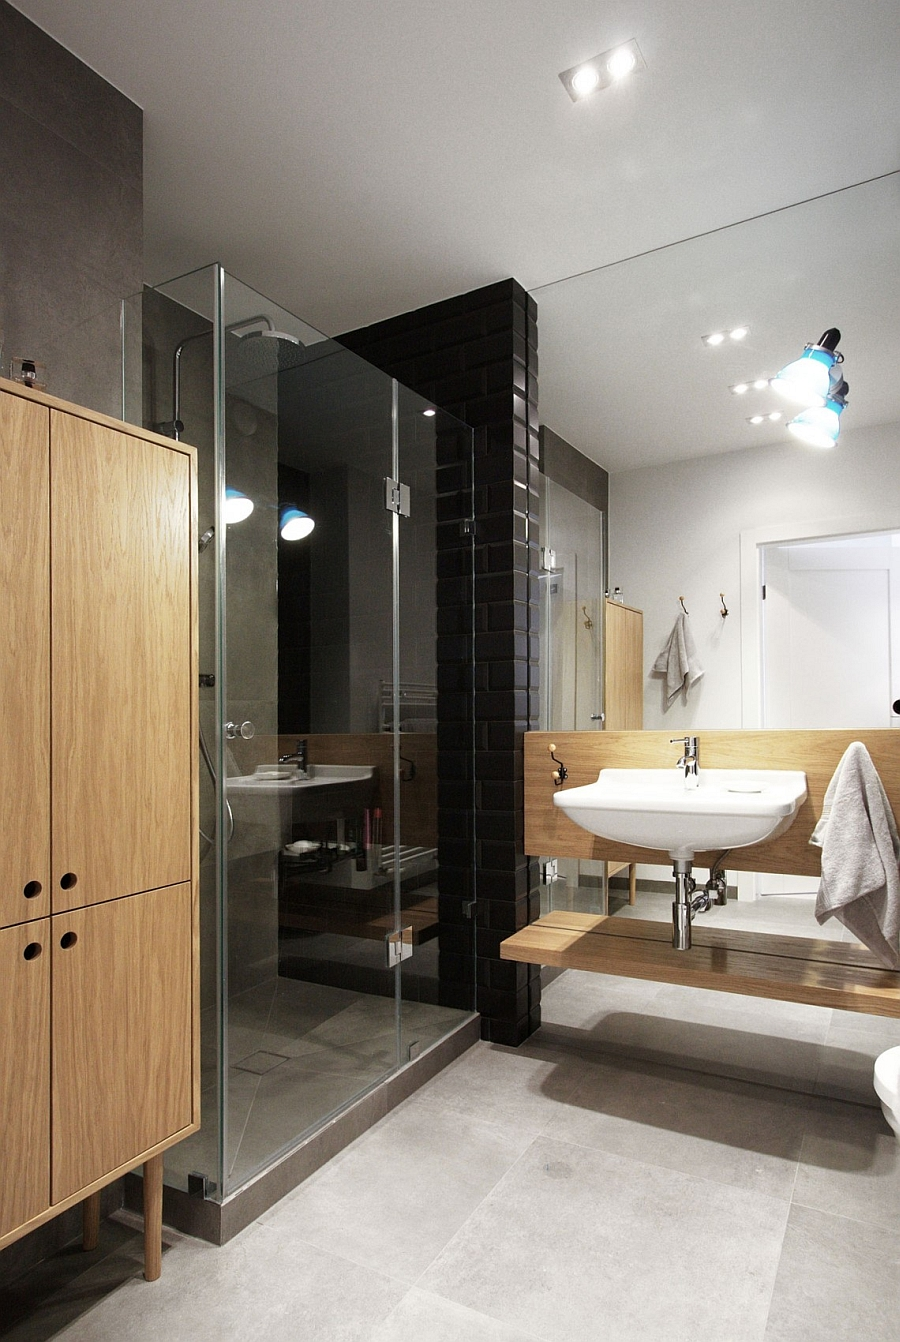 Bathroom in black and white with wooden tones